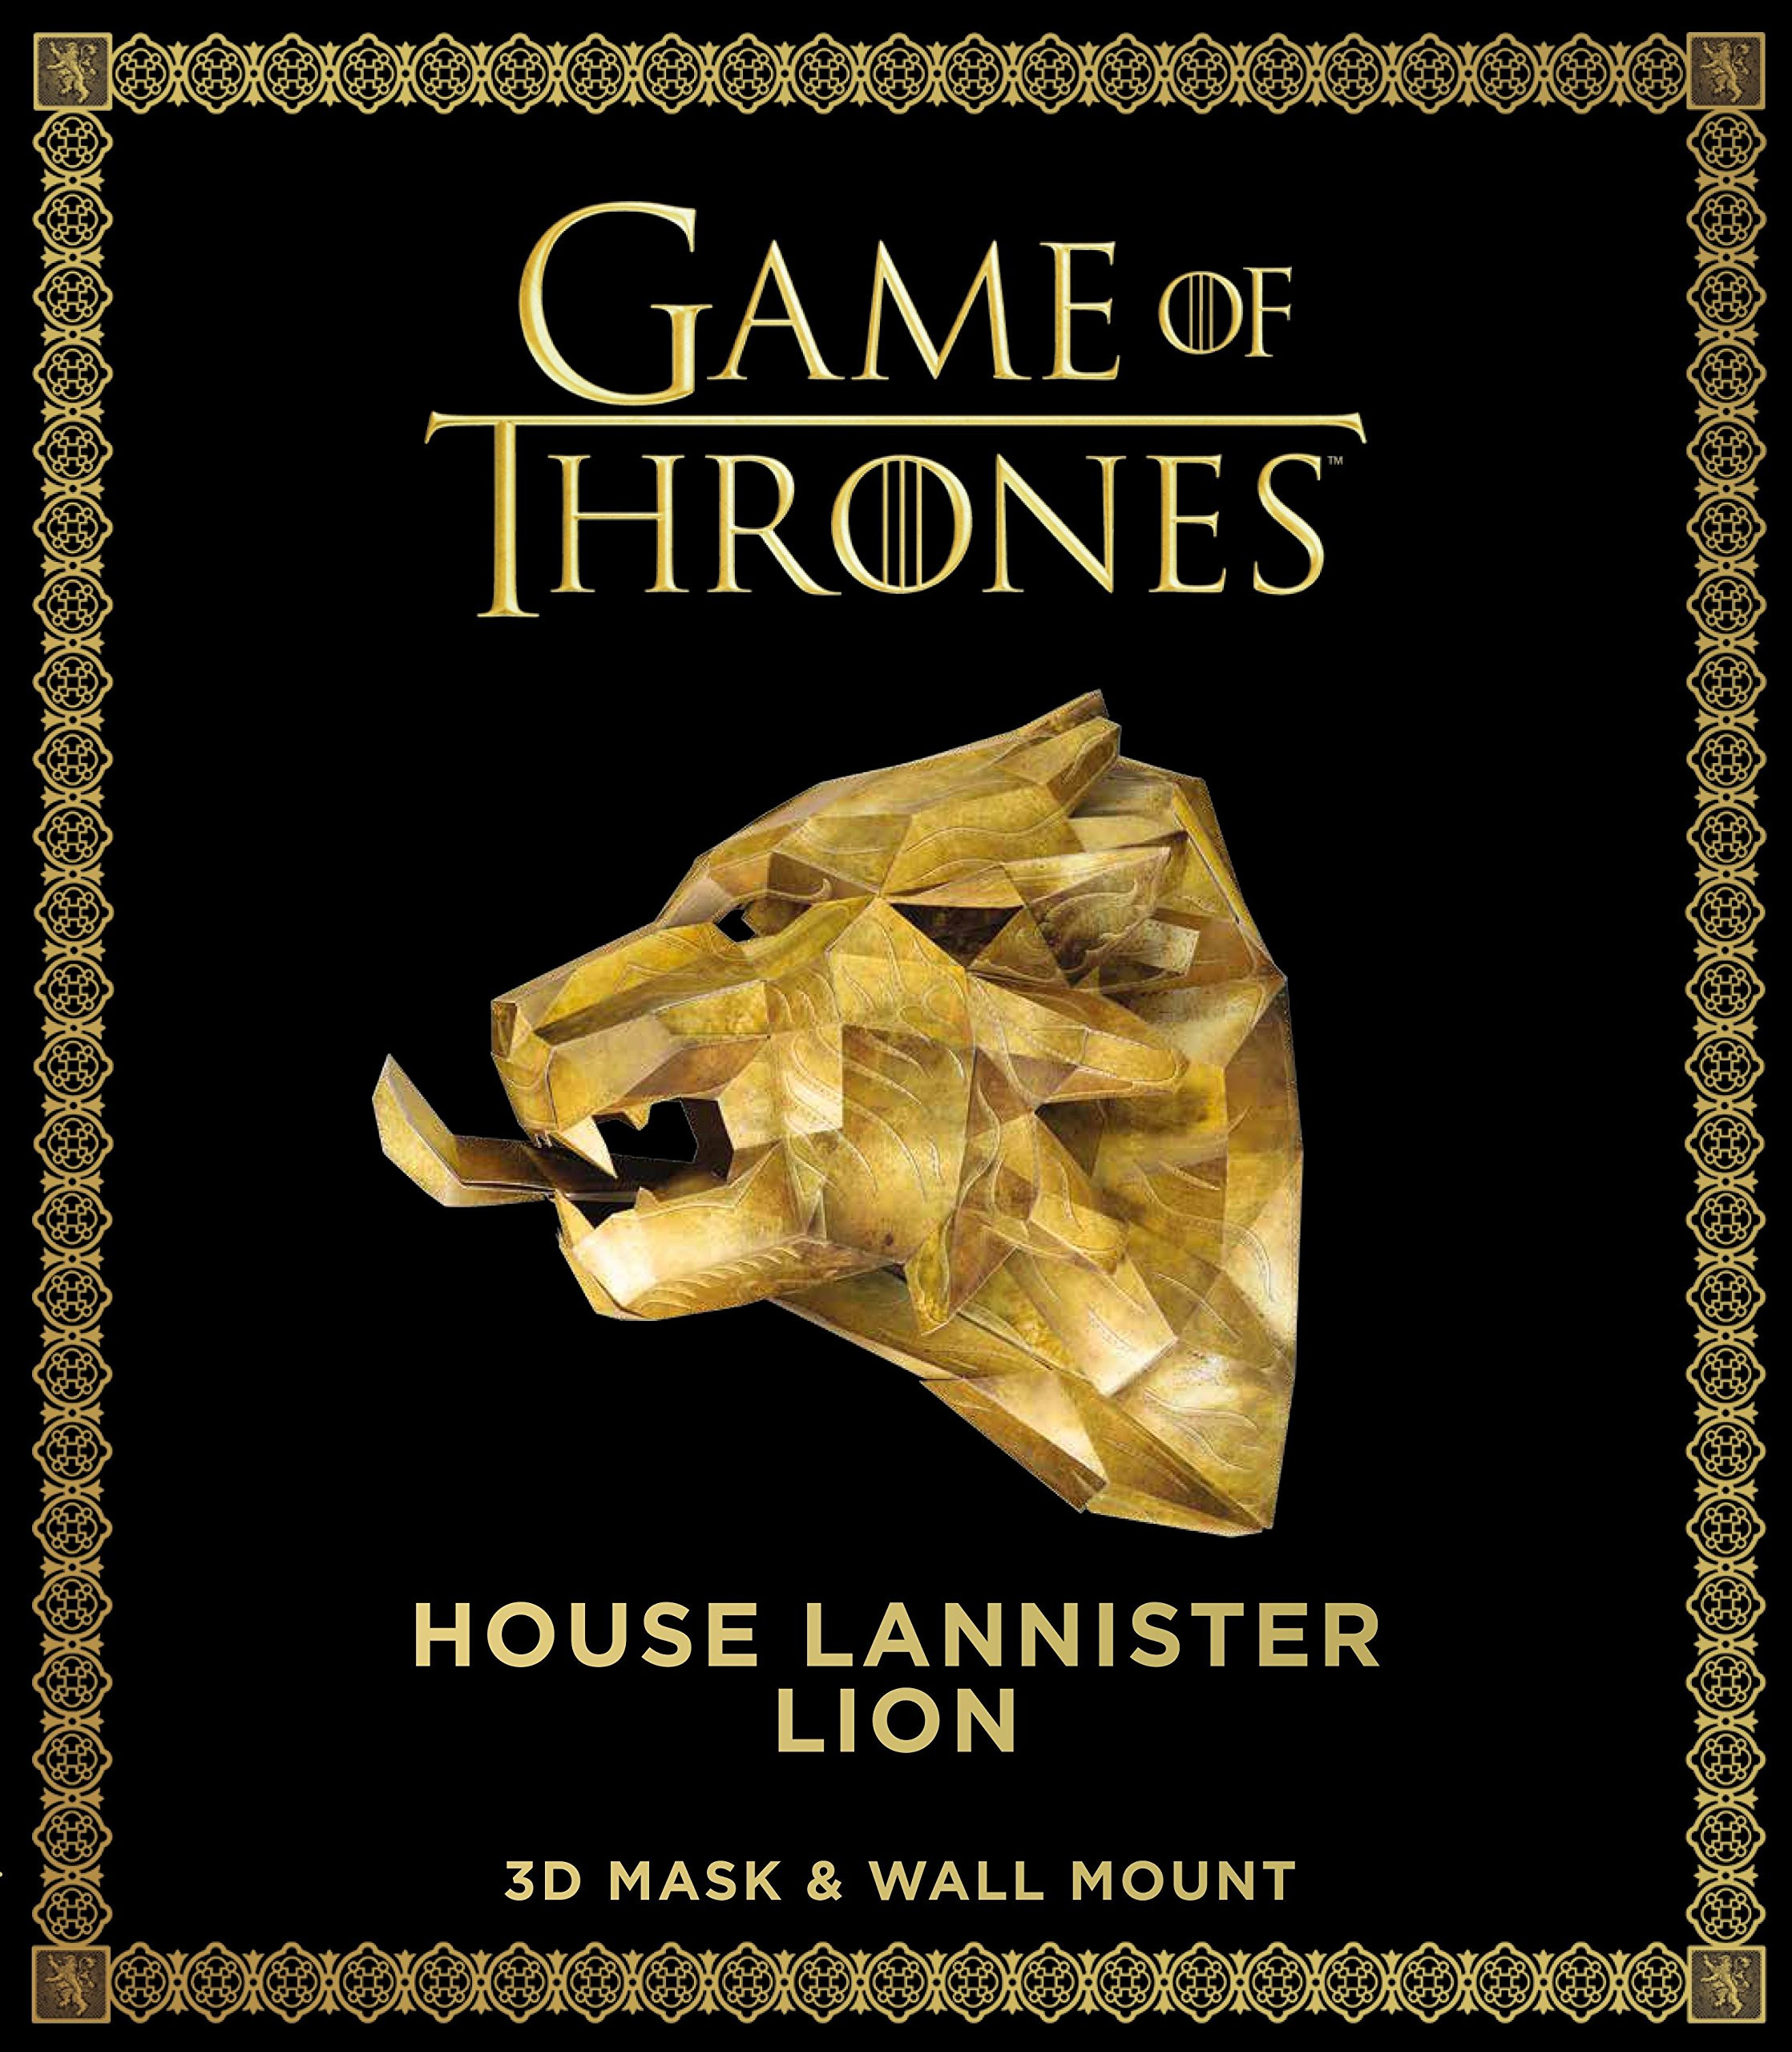 Download Game of Thrones Mask: House Lannister Lion (3D Mask & Wall Mount) ebook